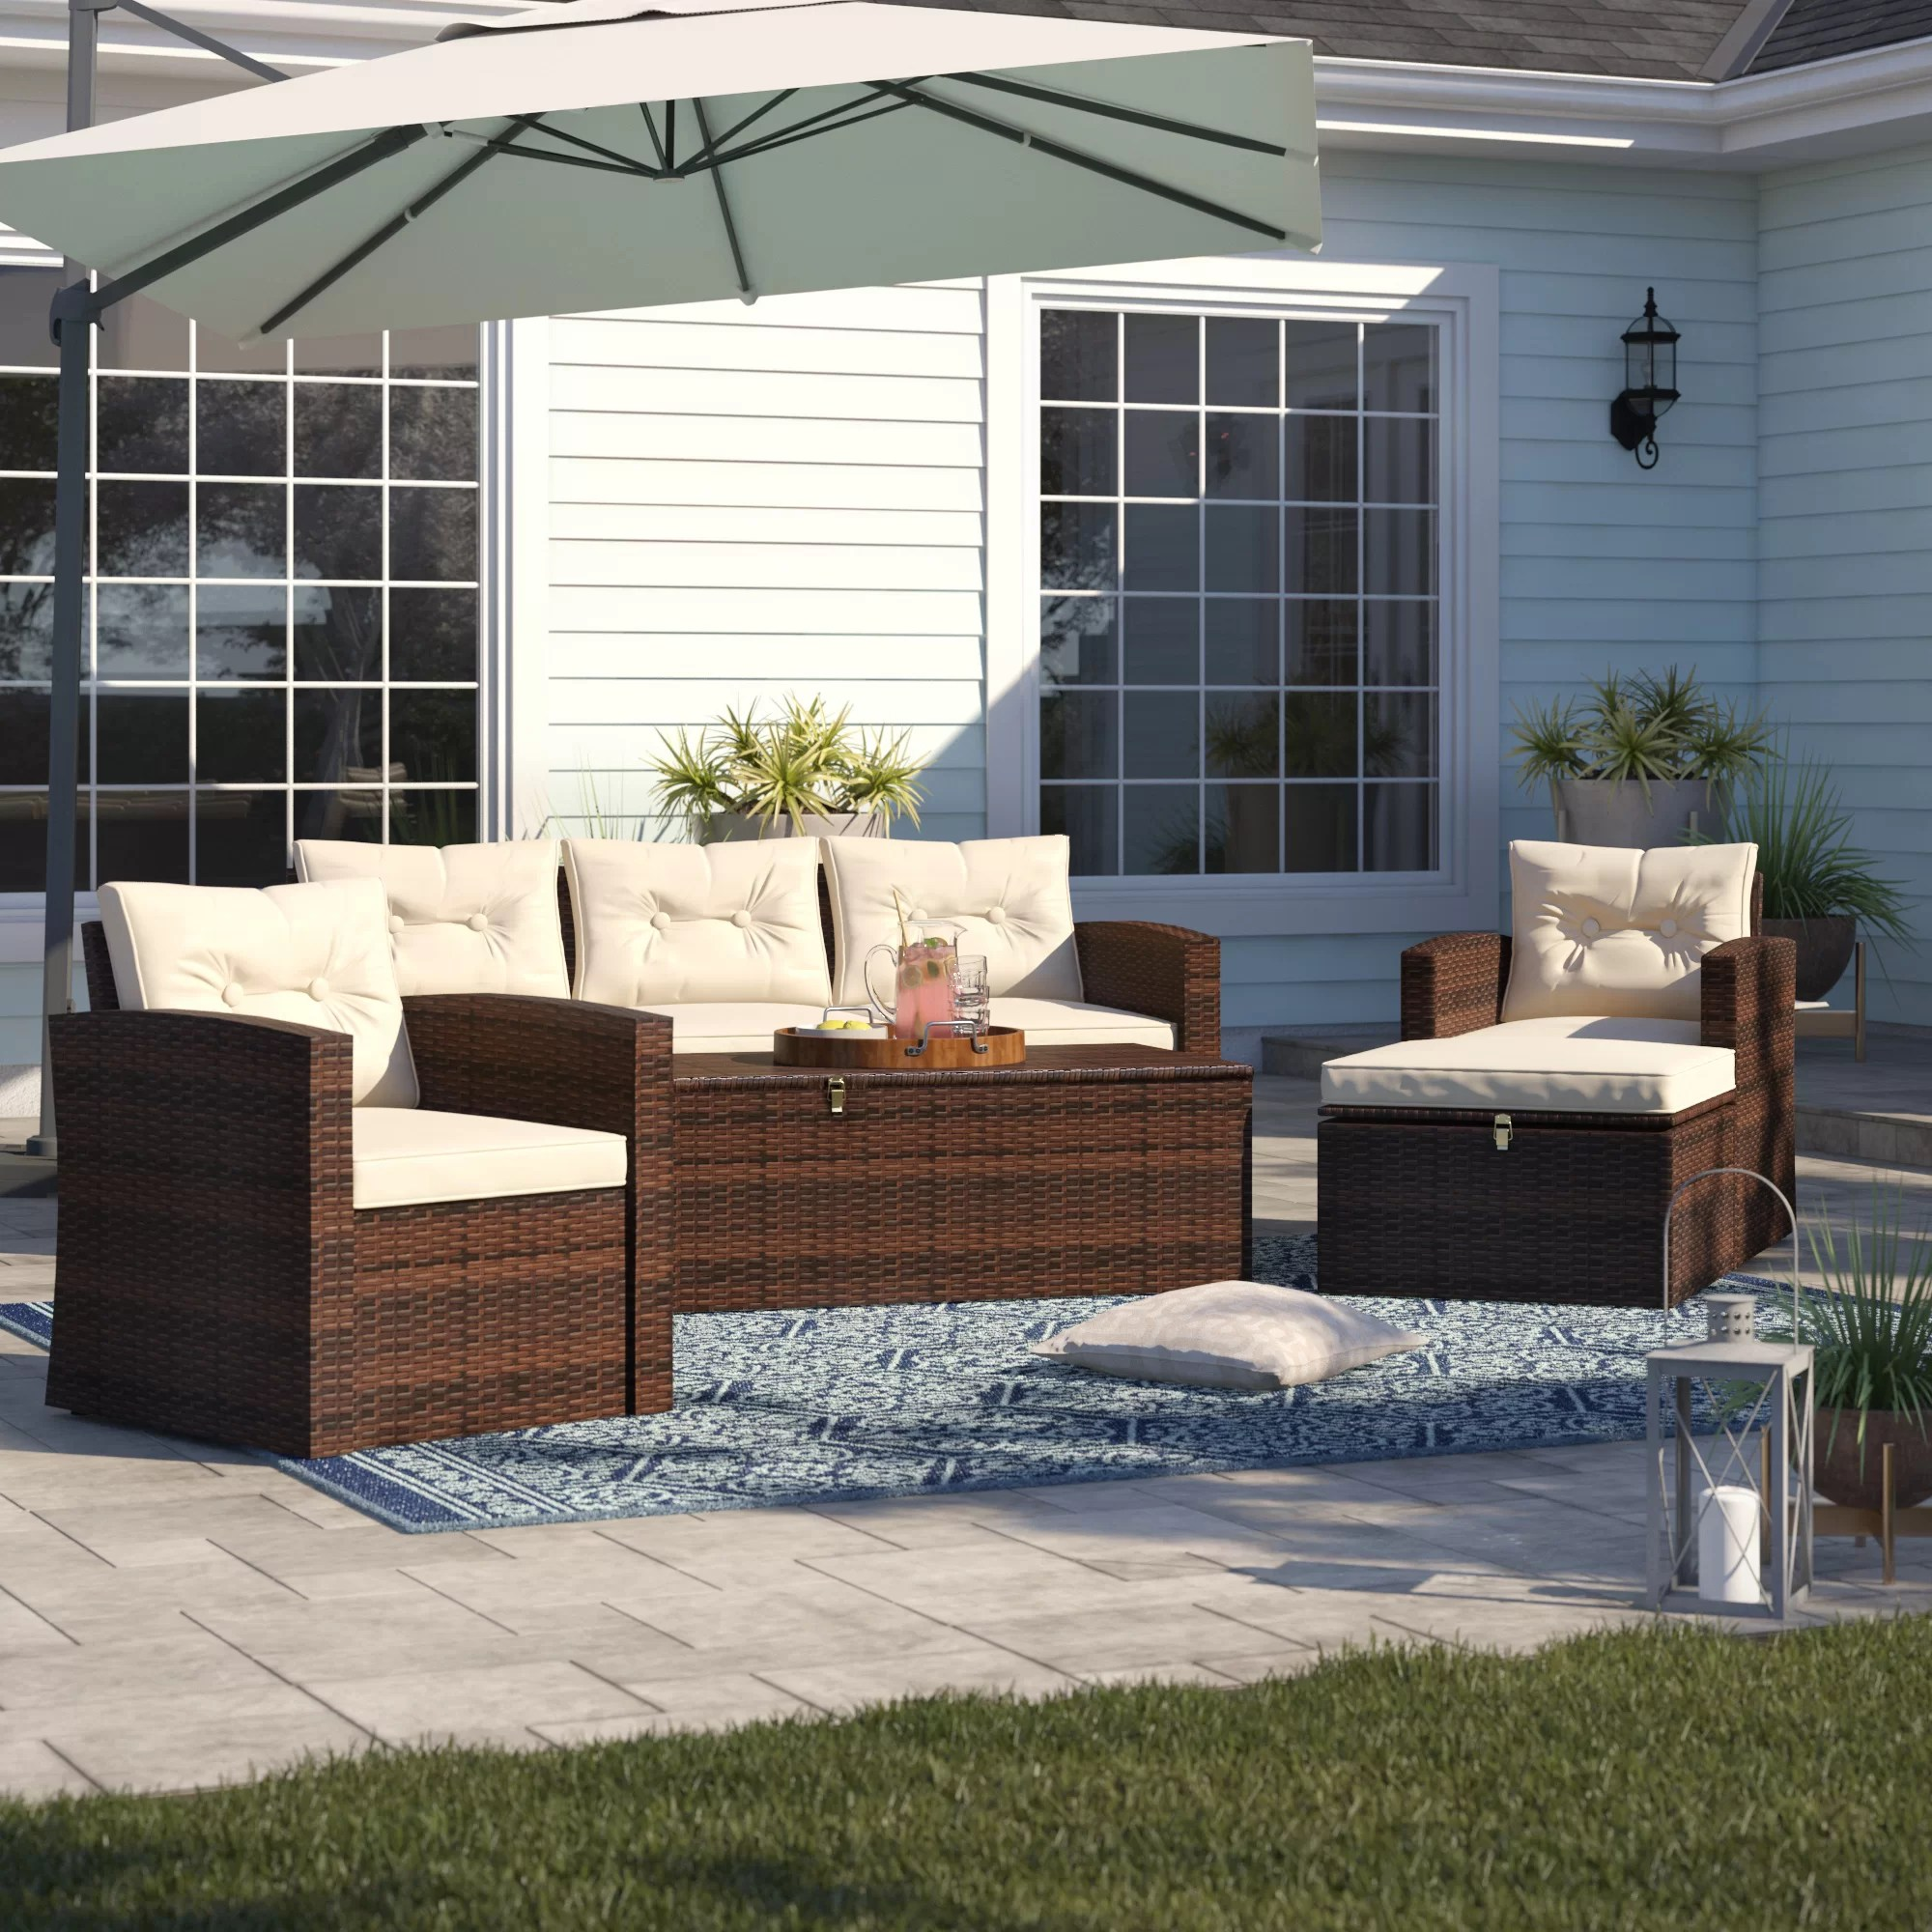 Sofa Cushions That Don't Go Flat Sol 72 Outdoor Arlington 5 Piece Sofa Set With Cushions Reviews